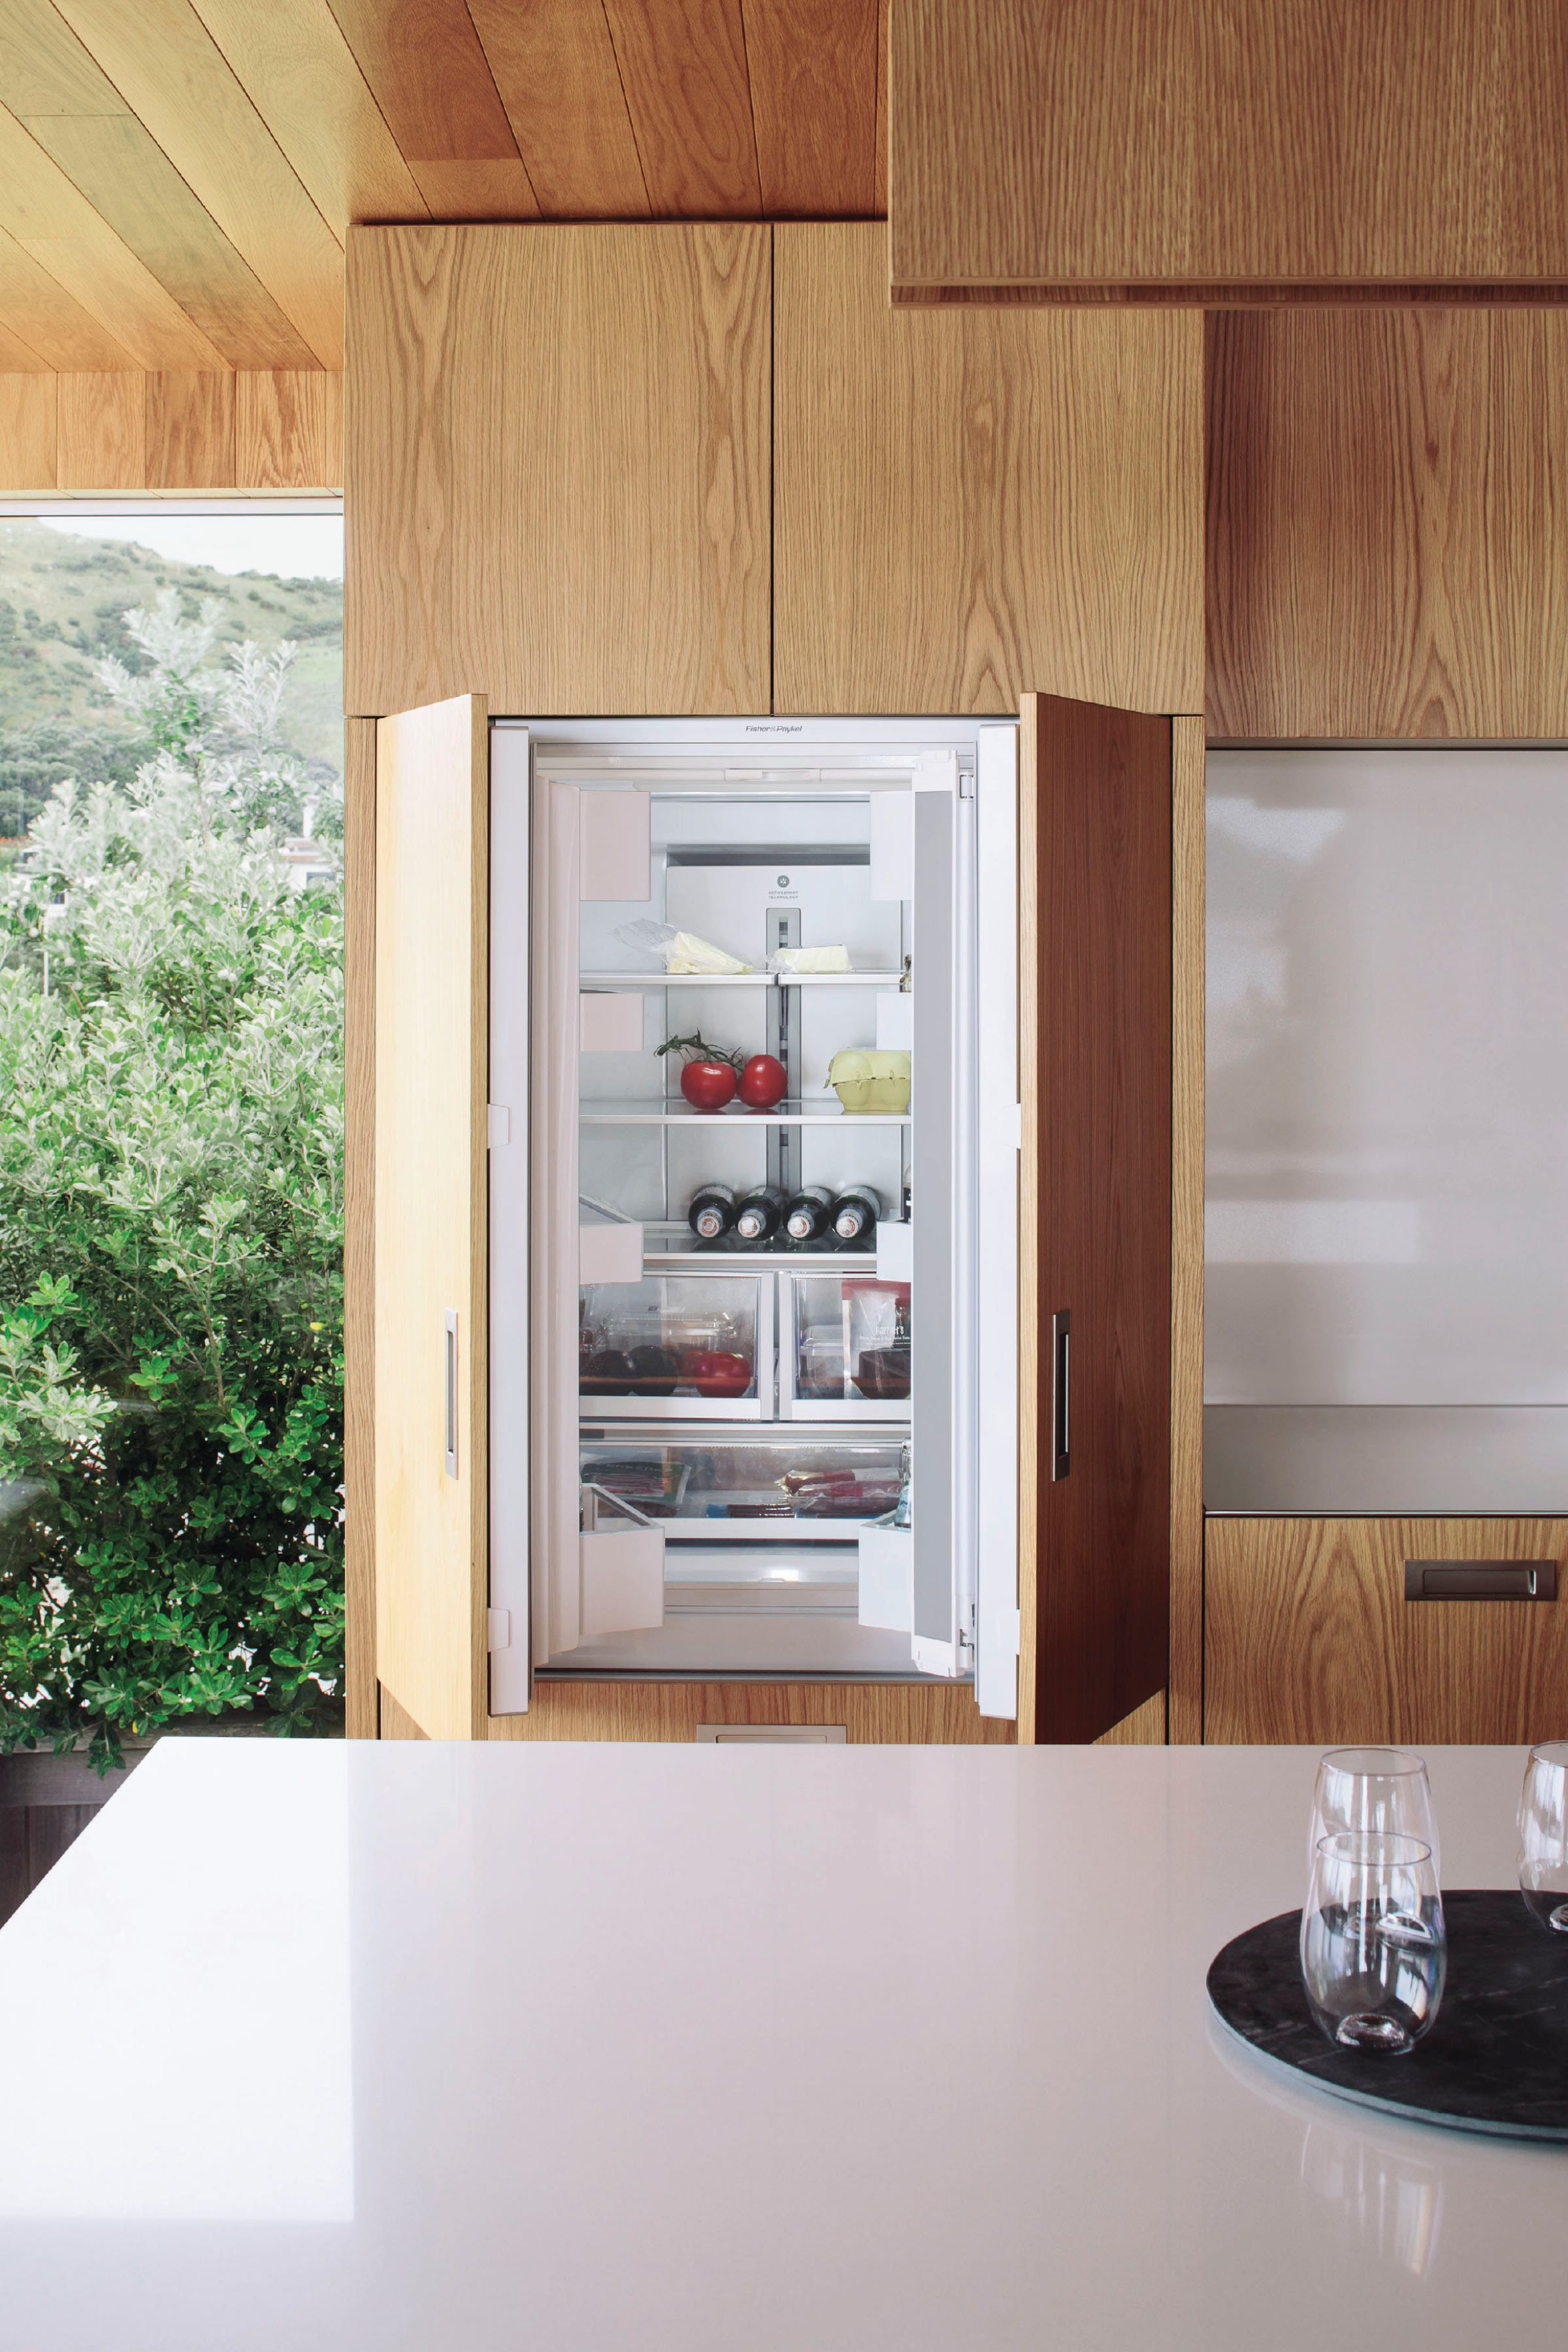 The Distributed Kitchen Optimal Foodcare Kitchen Design French Doors Integrated Fridge